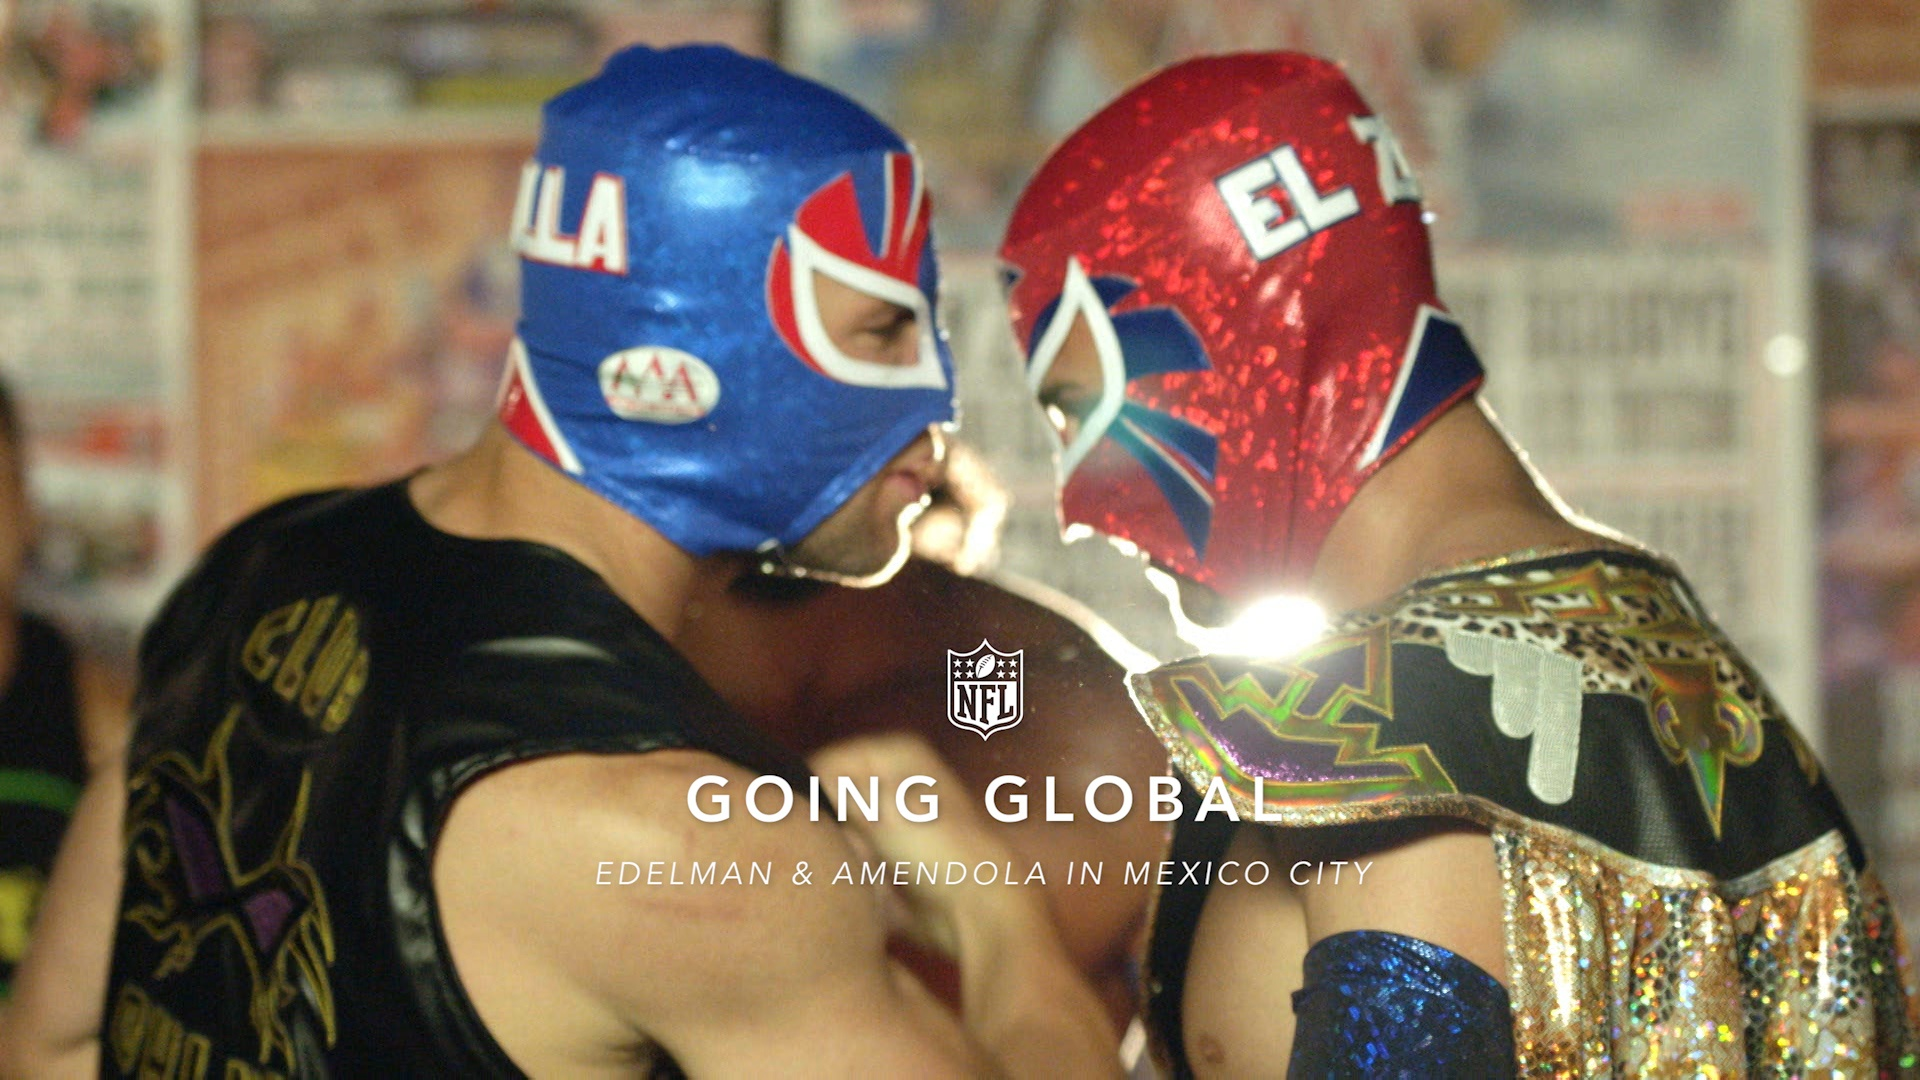 Image Media for Going Global: Danny Amendola and Julian Edelman in Mexico